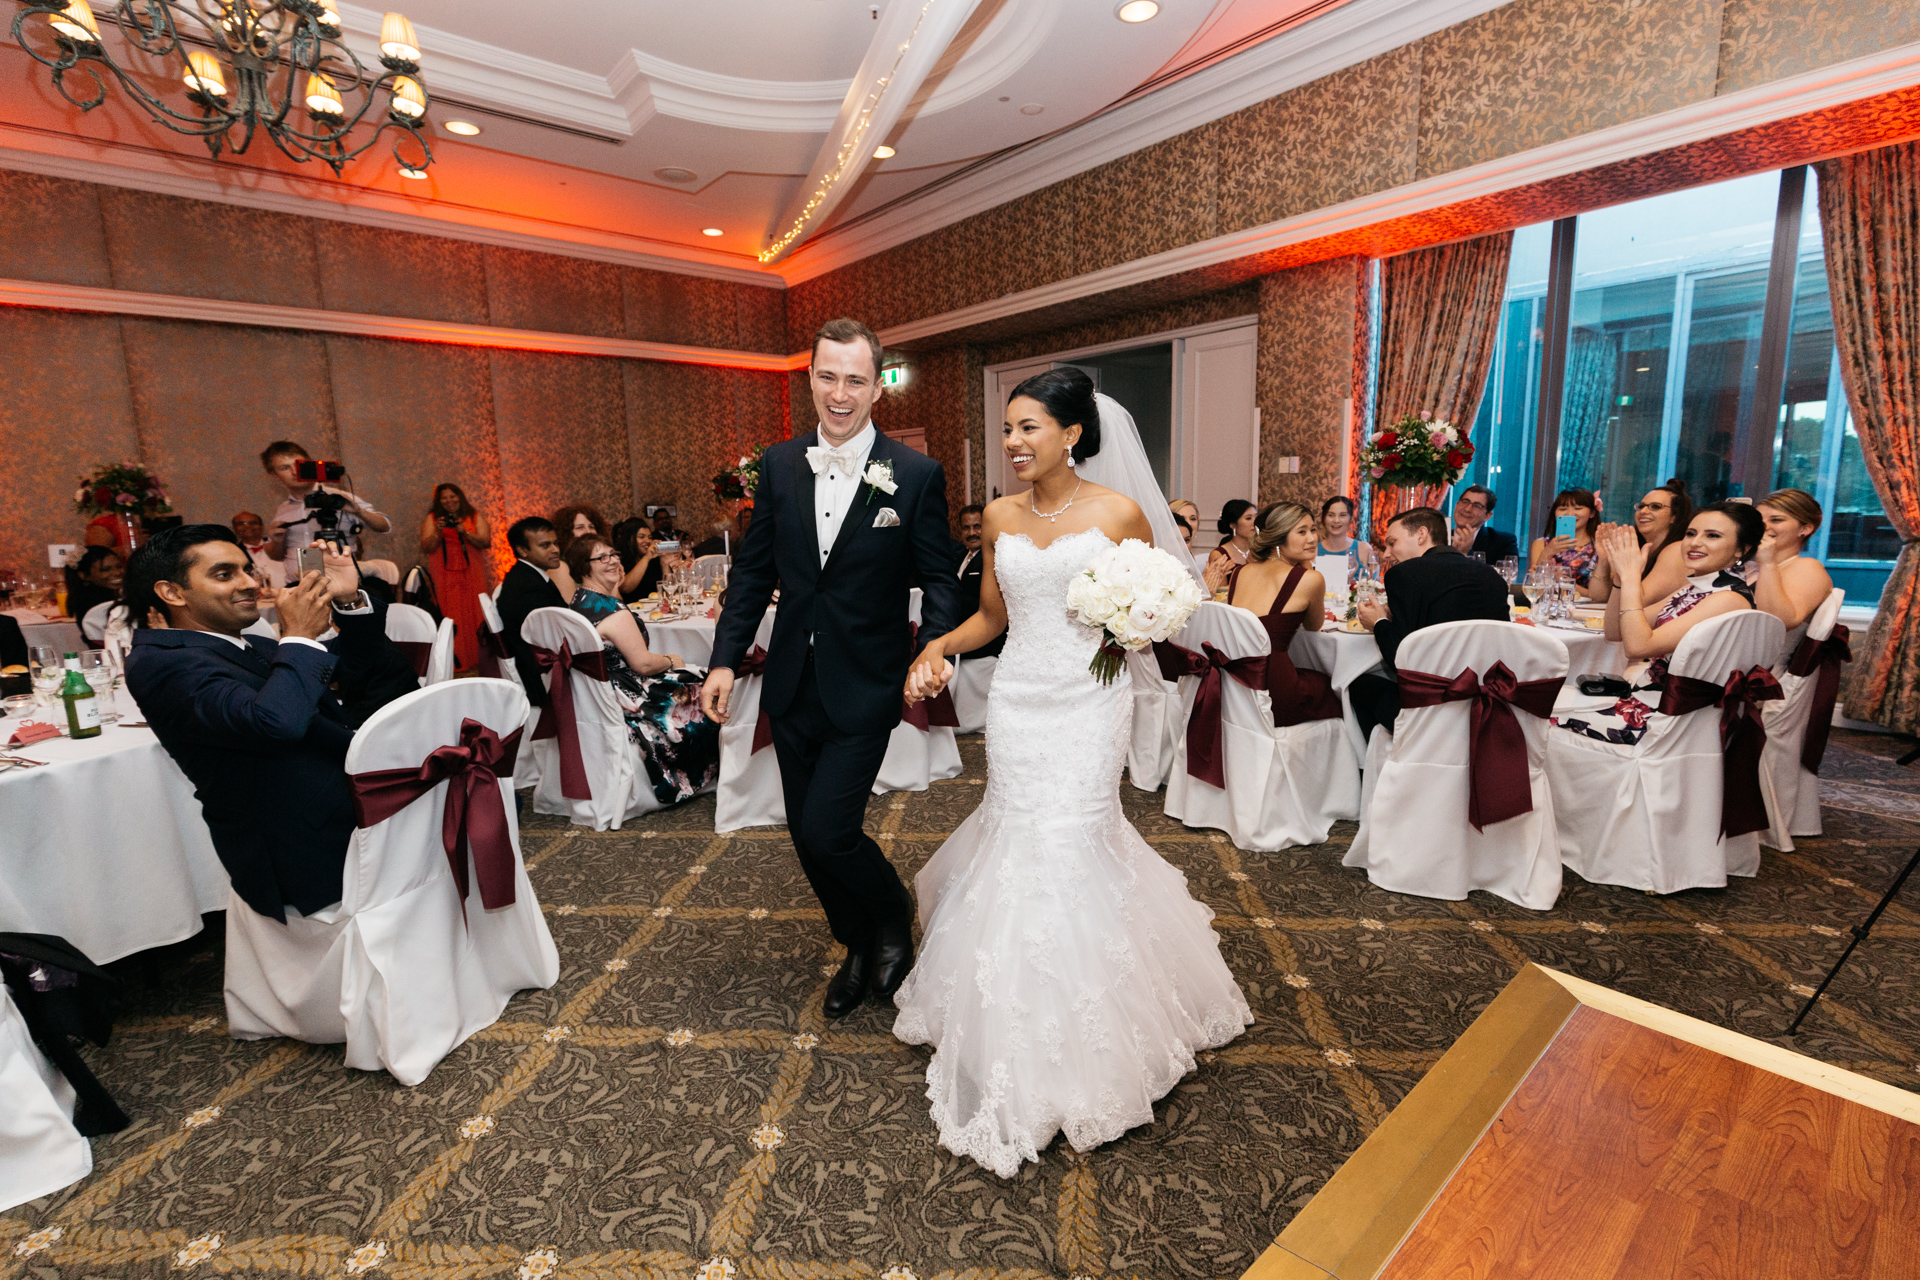 Wedding Reception at Stamford Wedding Photogrpahy & Video